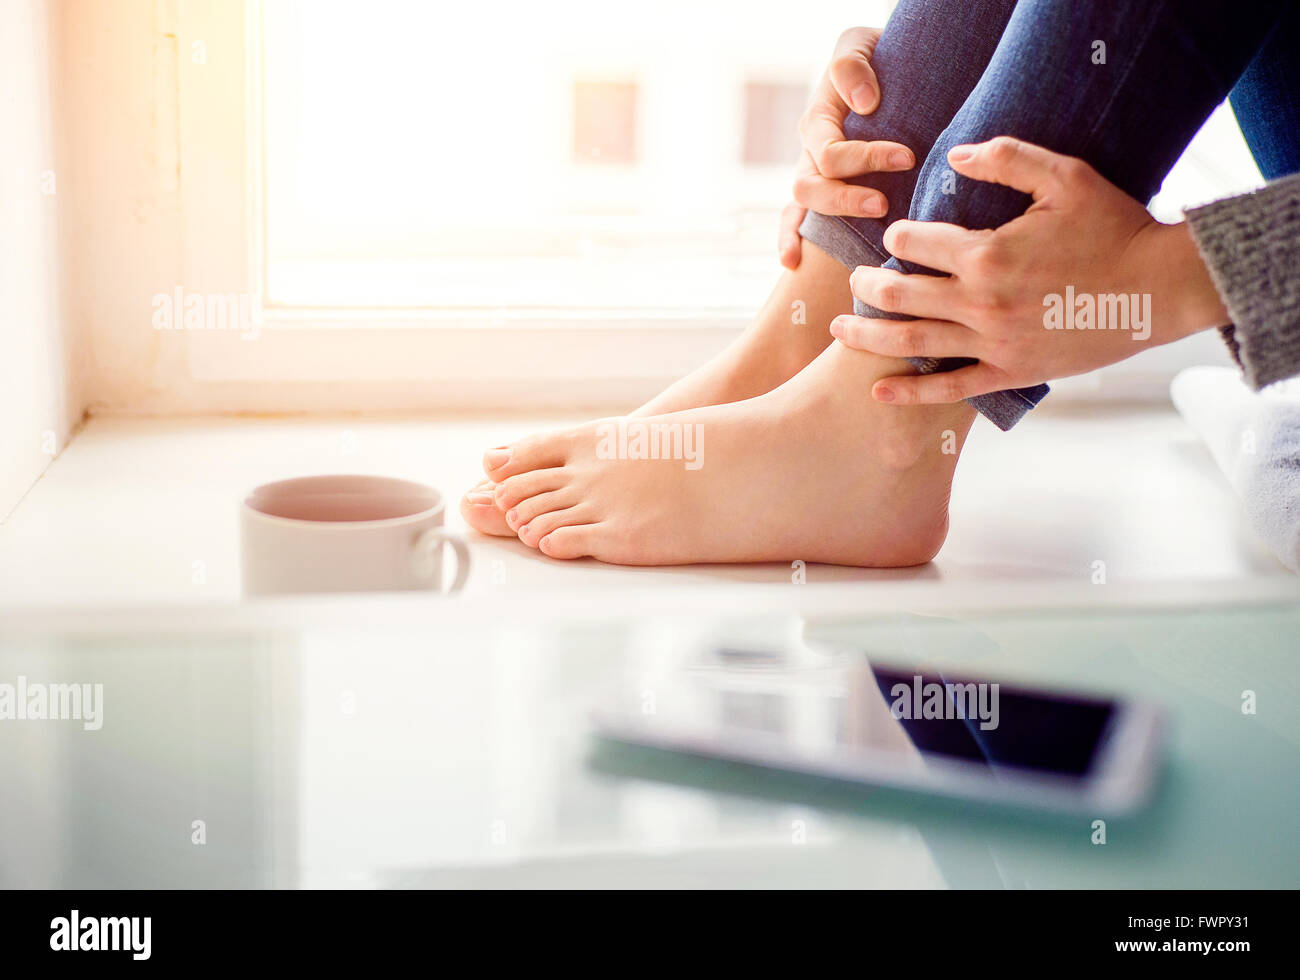 Feet of unrecognizable woman sitting on window sill - Stock Image